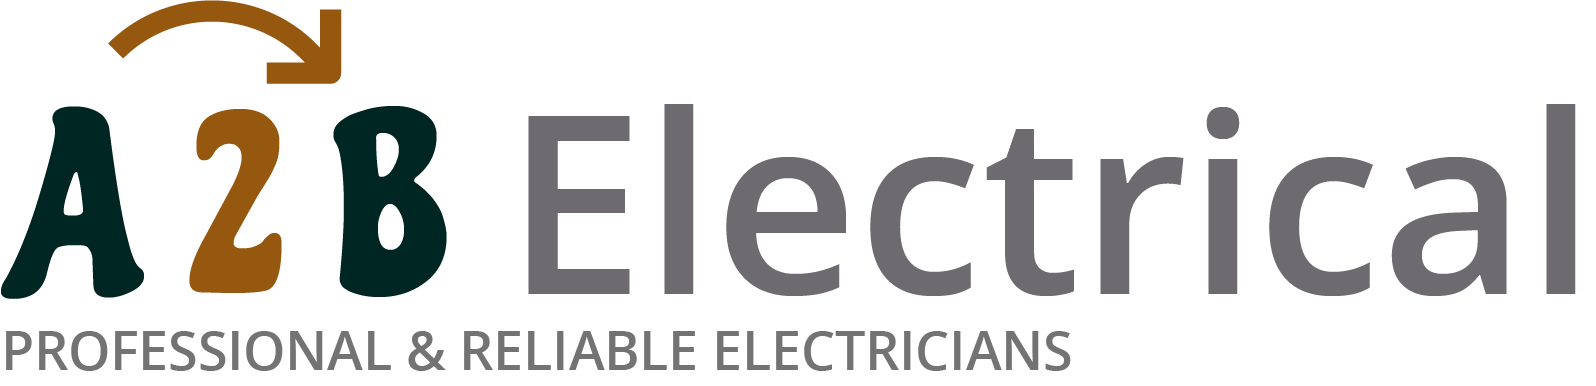 If you have electrical wiring problems in Shenfield, we can provide an electrician to have a look for you.